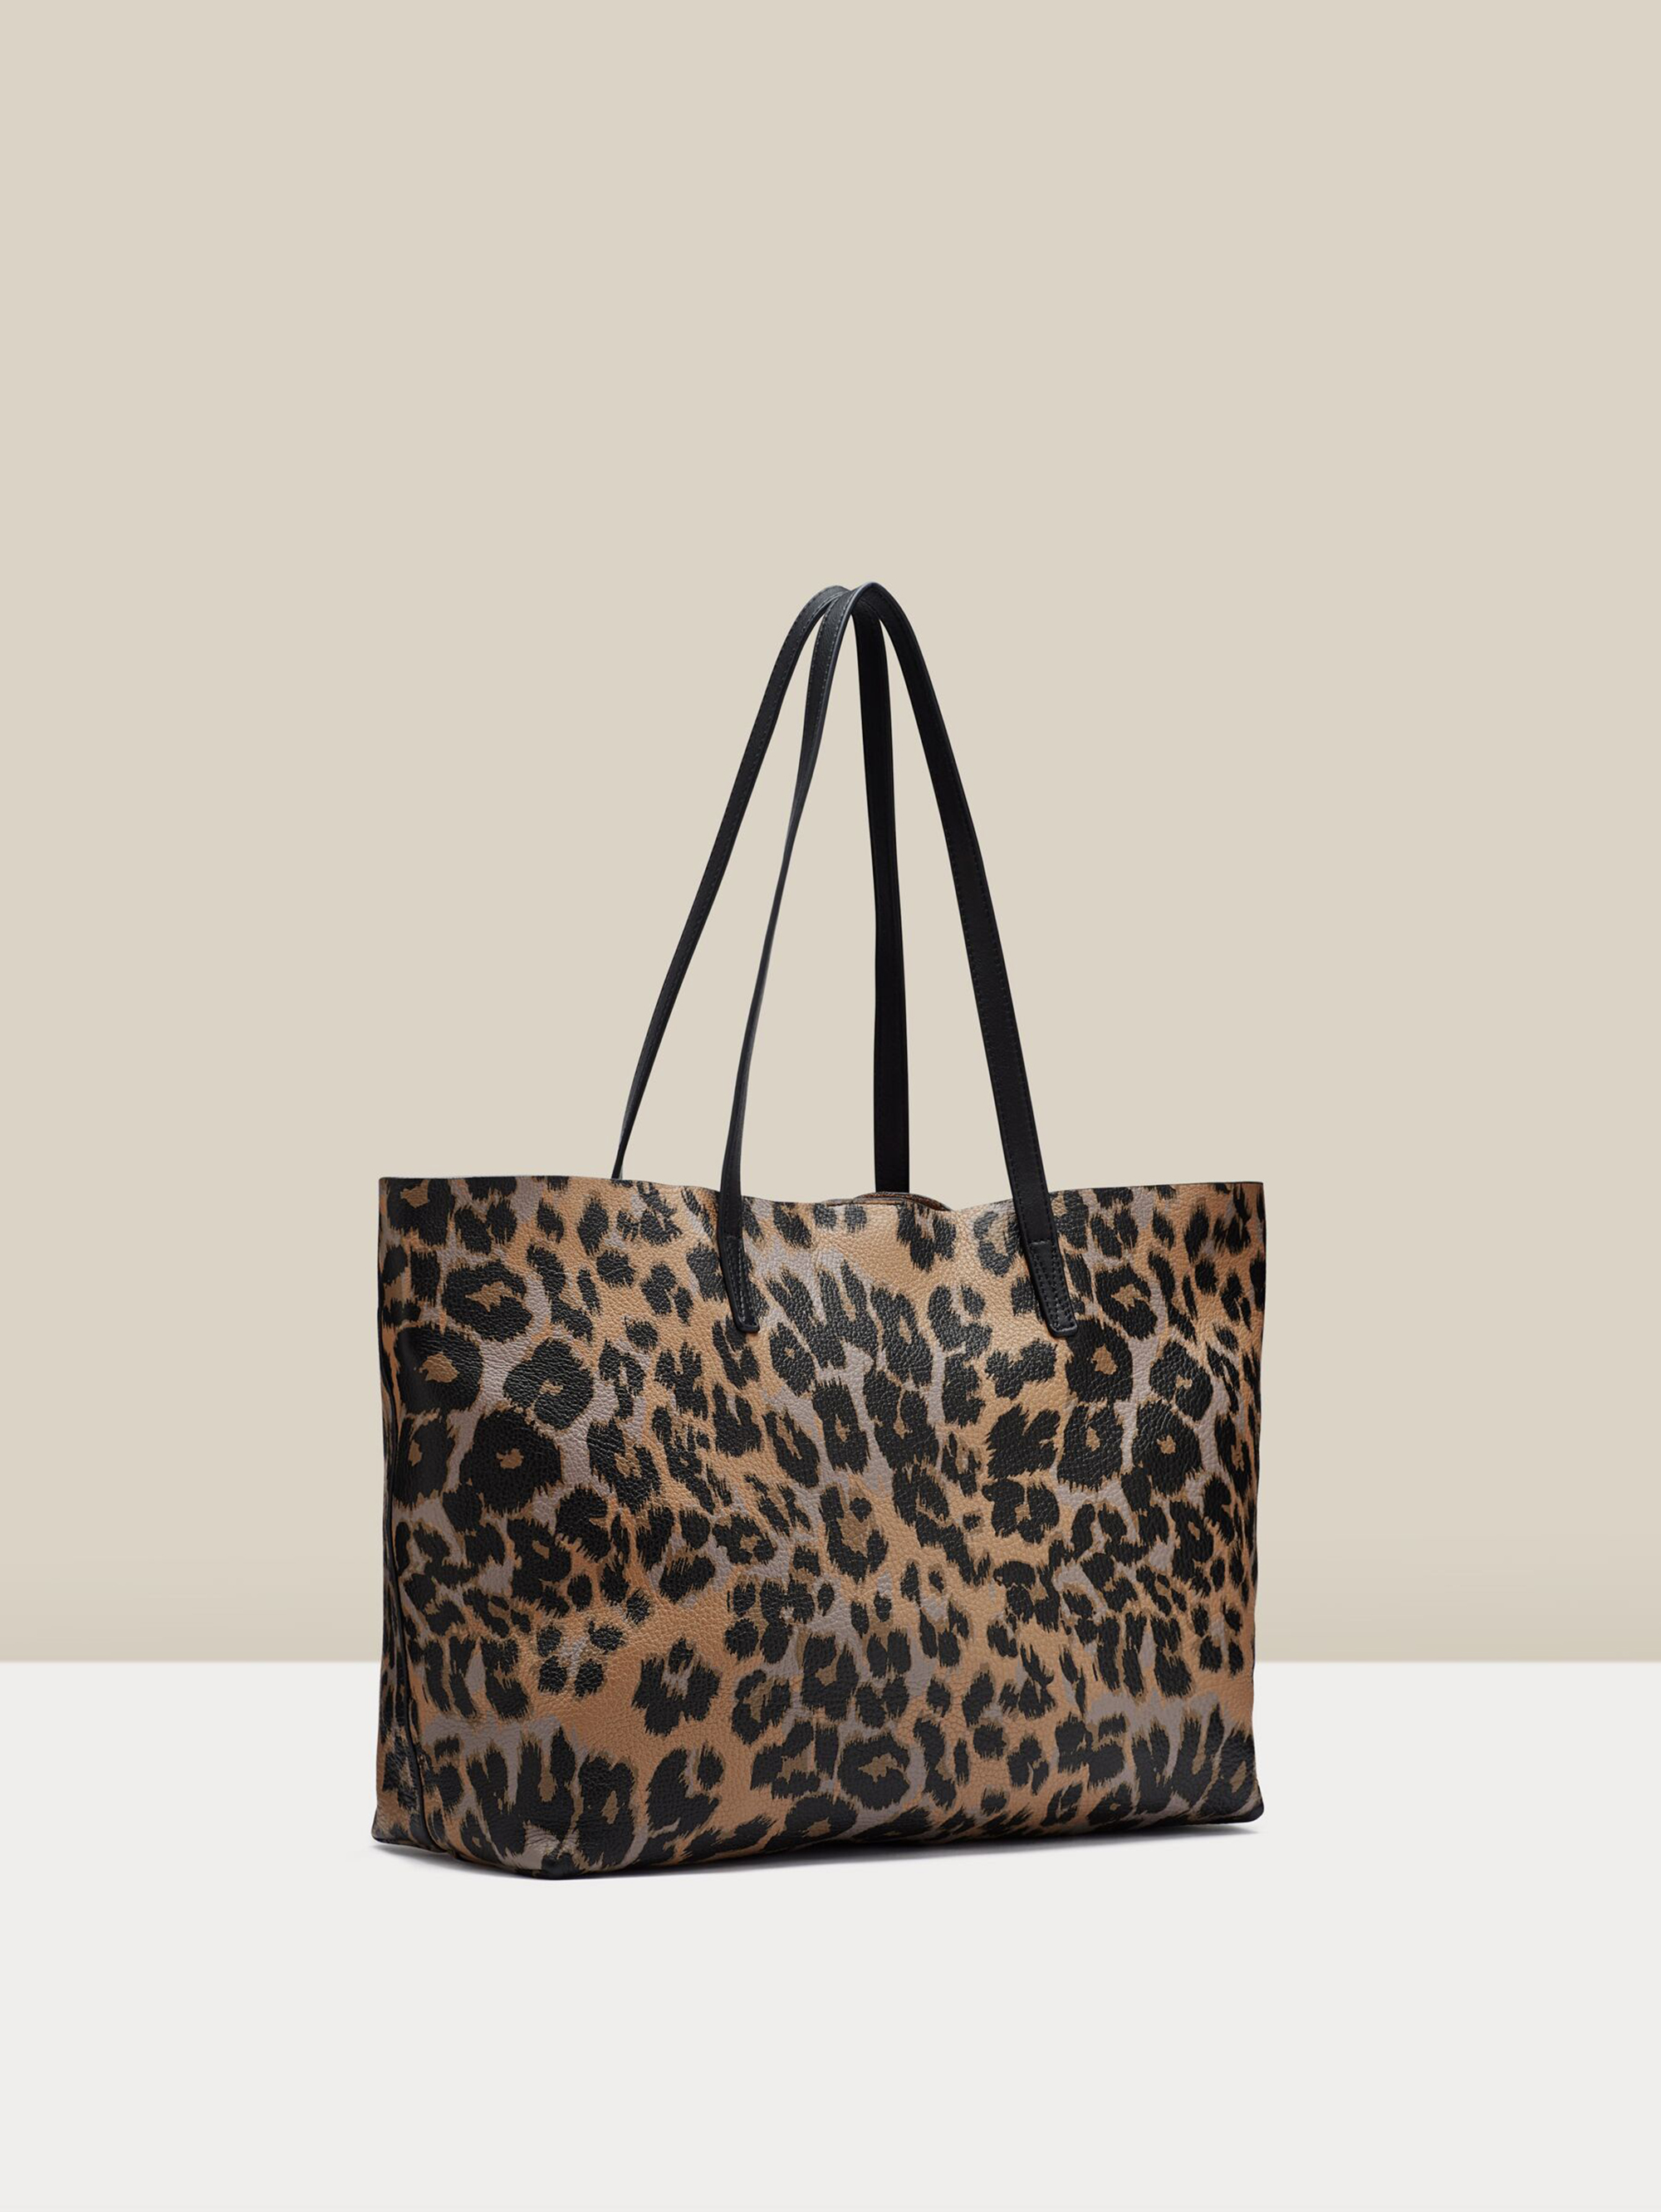 Belmont Structured Tote in Tan Leopard